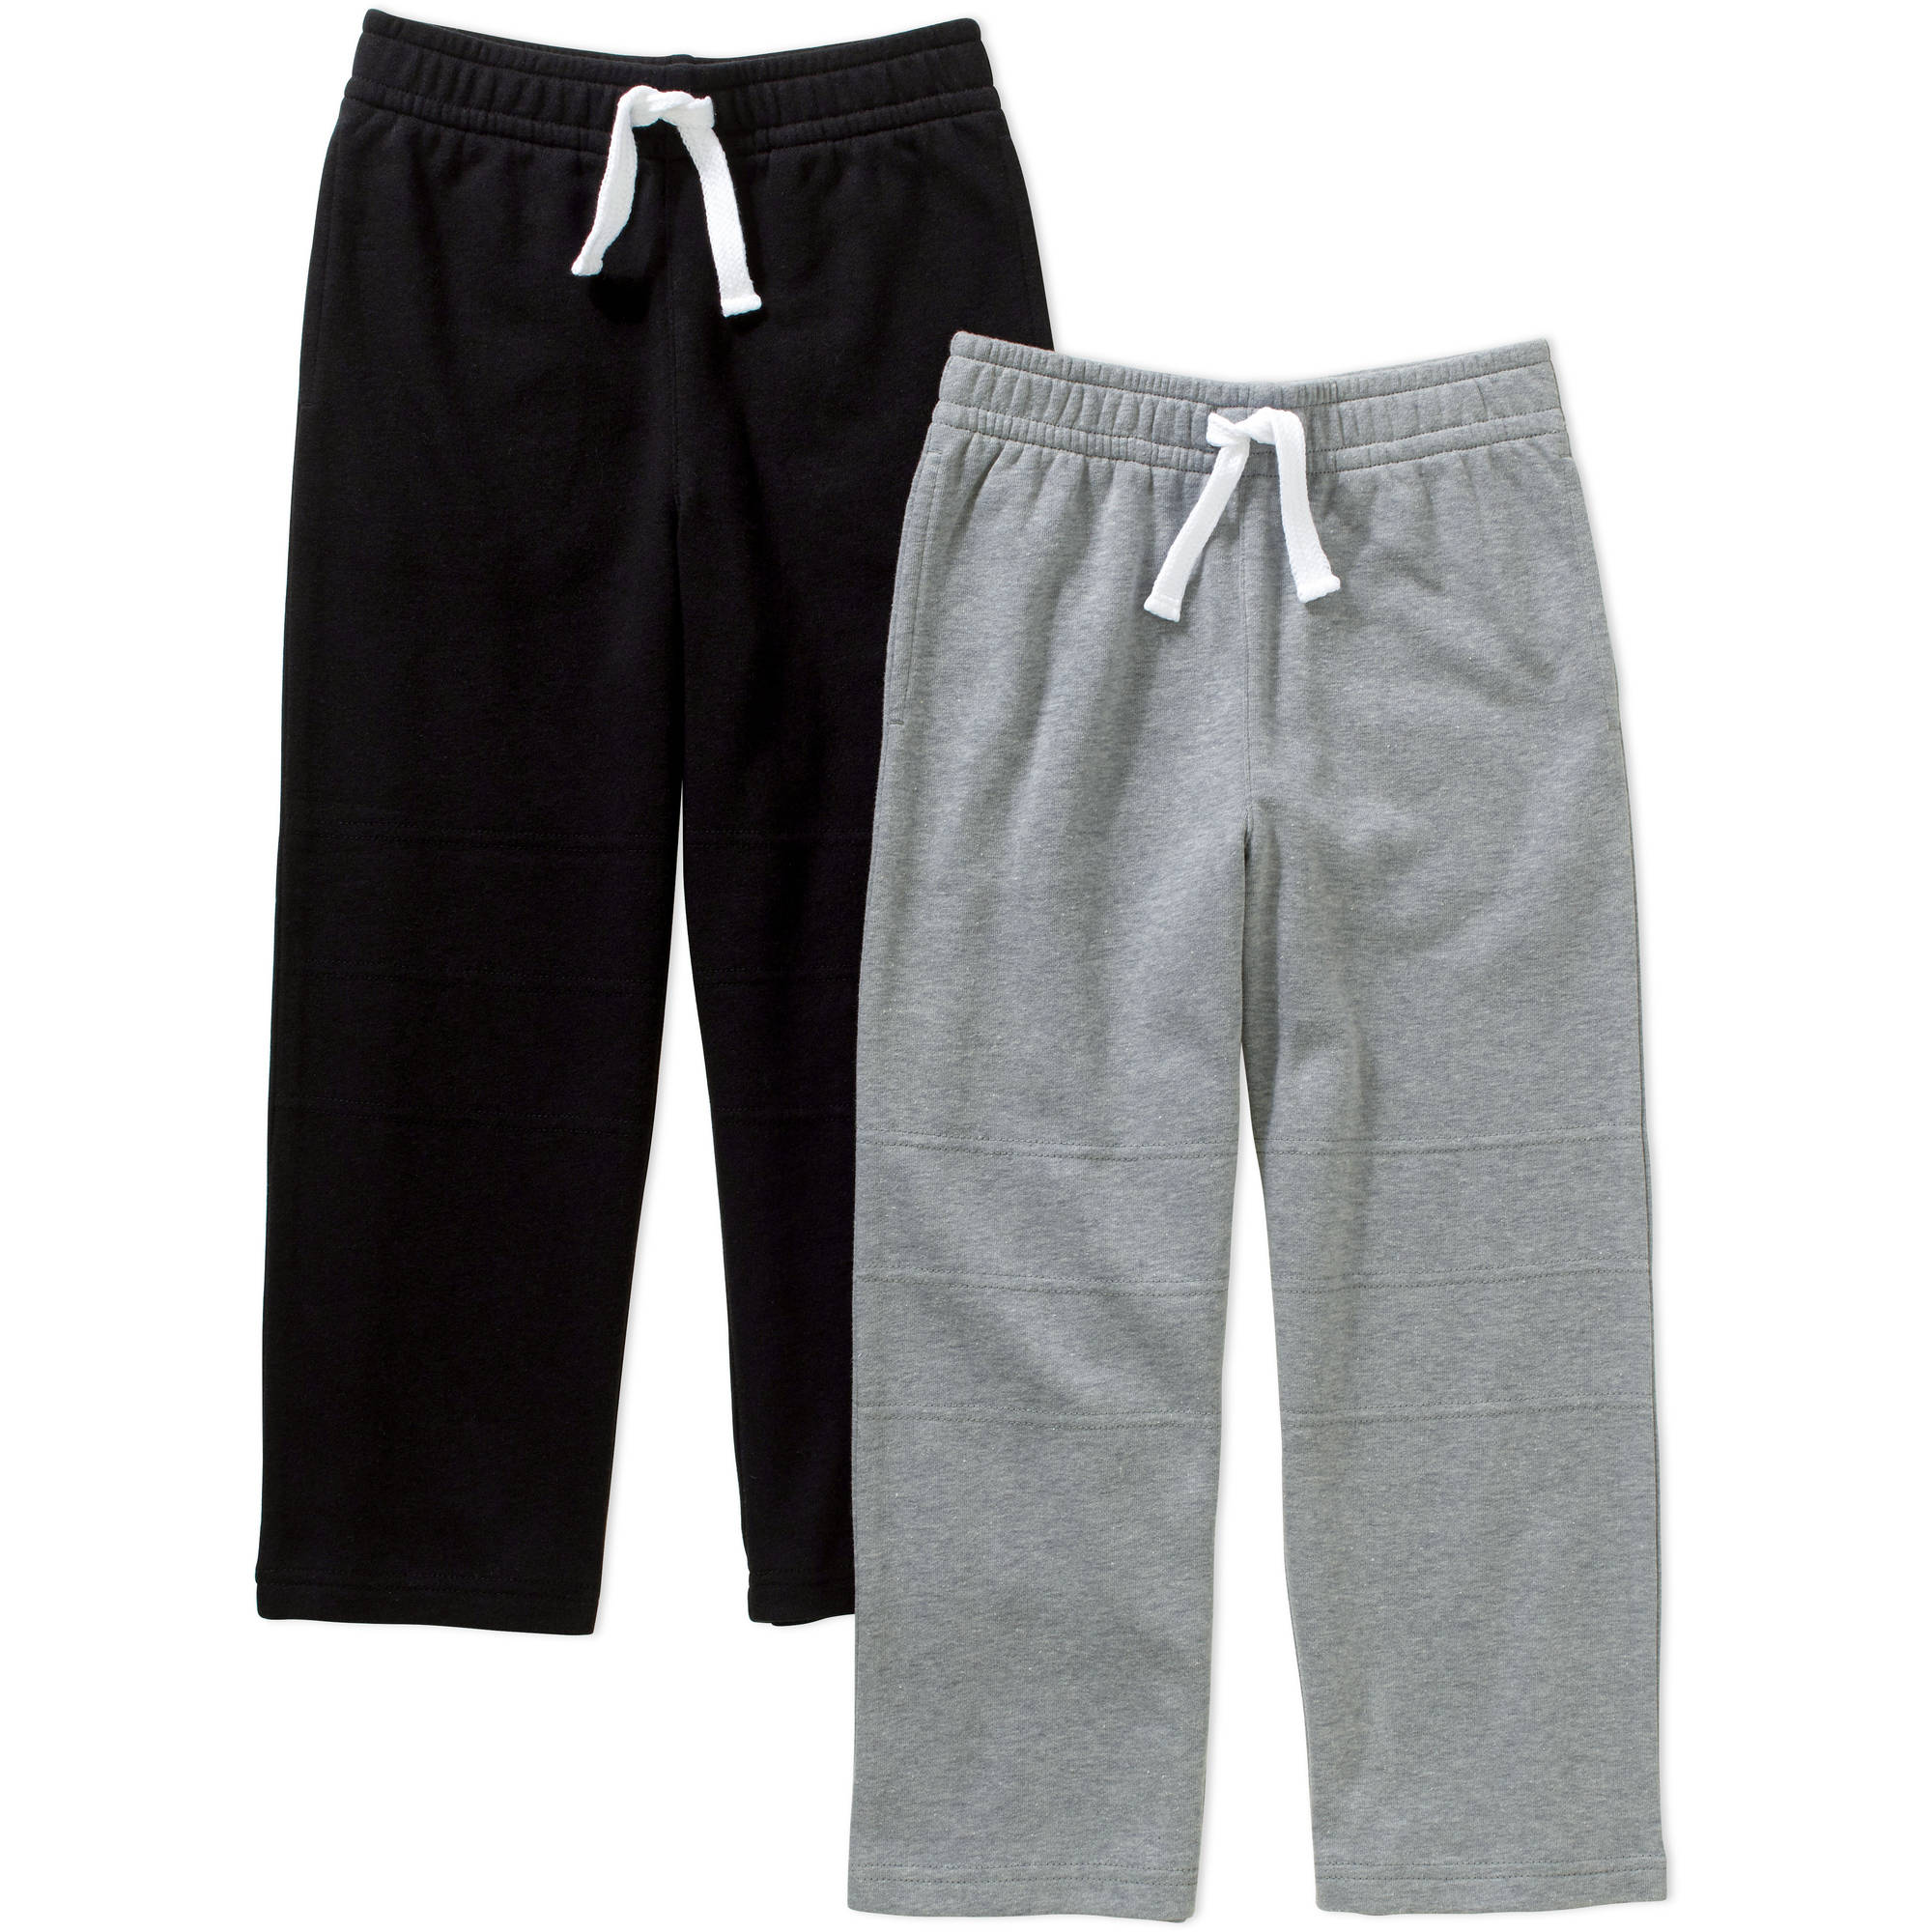 Image of 365 Kids From Garanimals Boys' 2 Piece French Terry Pants Set